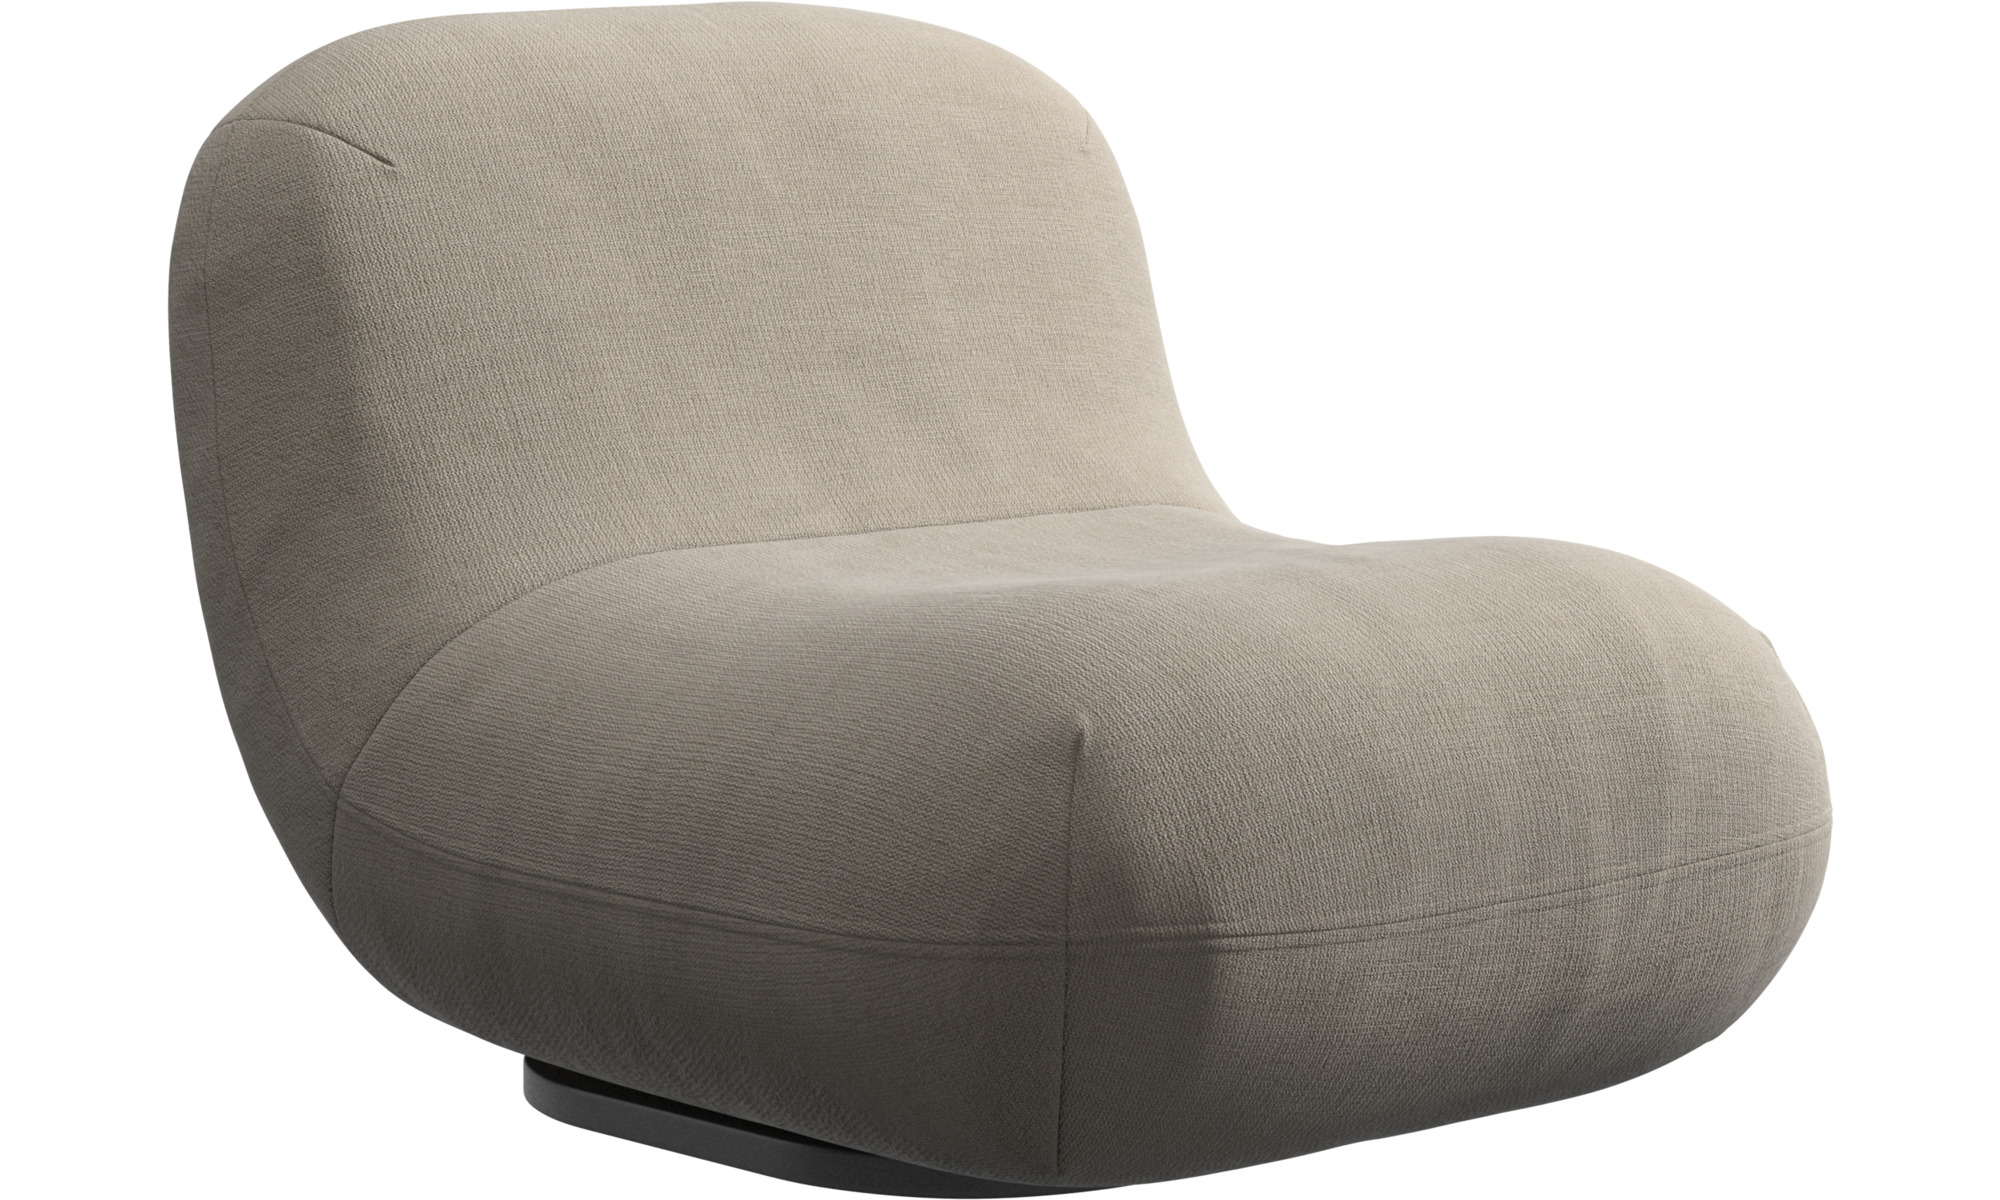 Groovy Armchairs Chelsea Chair Boconcept Pdpeps Interior Chair Design Pdpepsorg